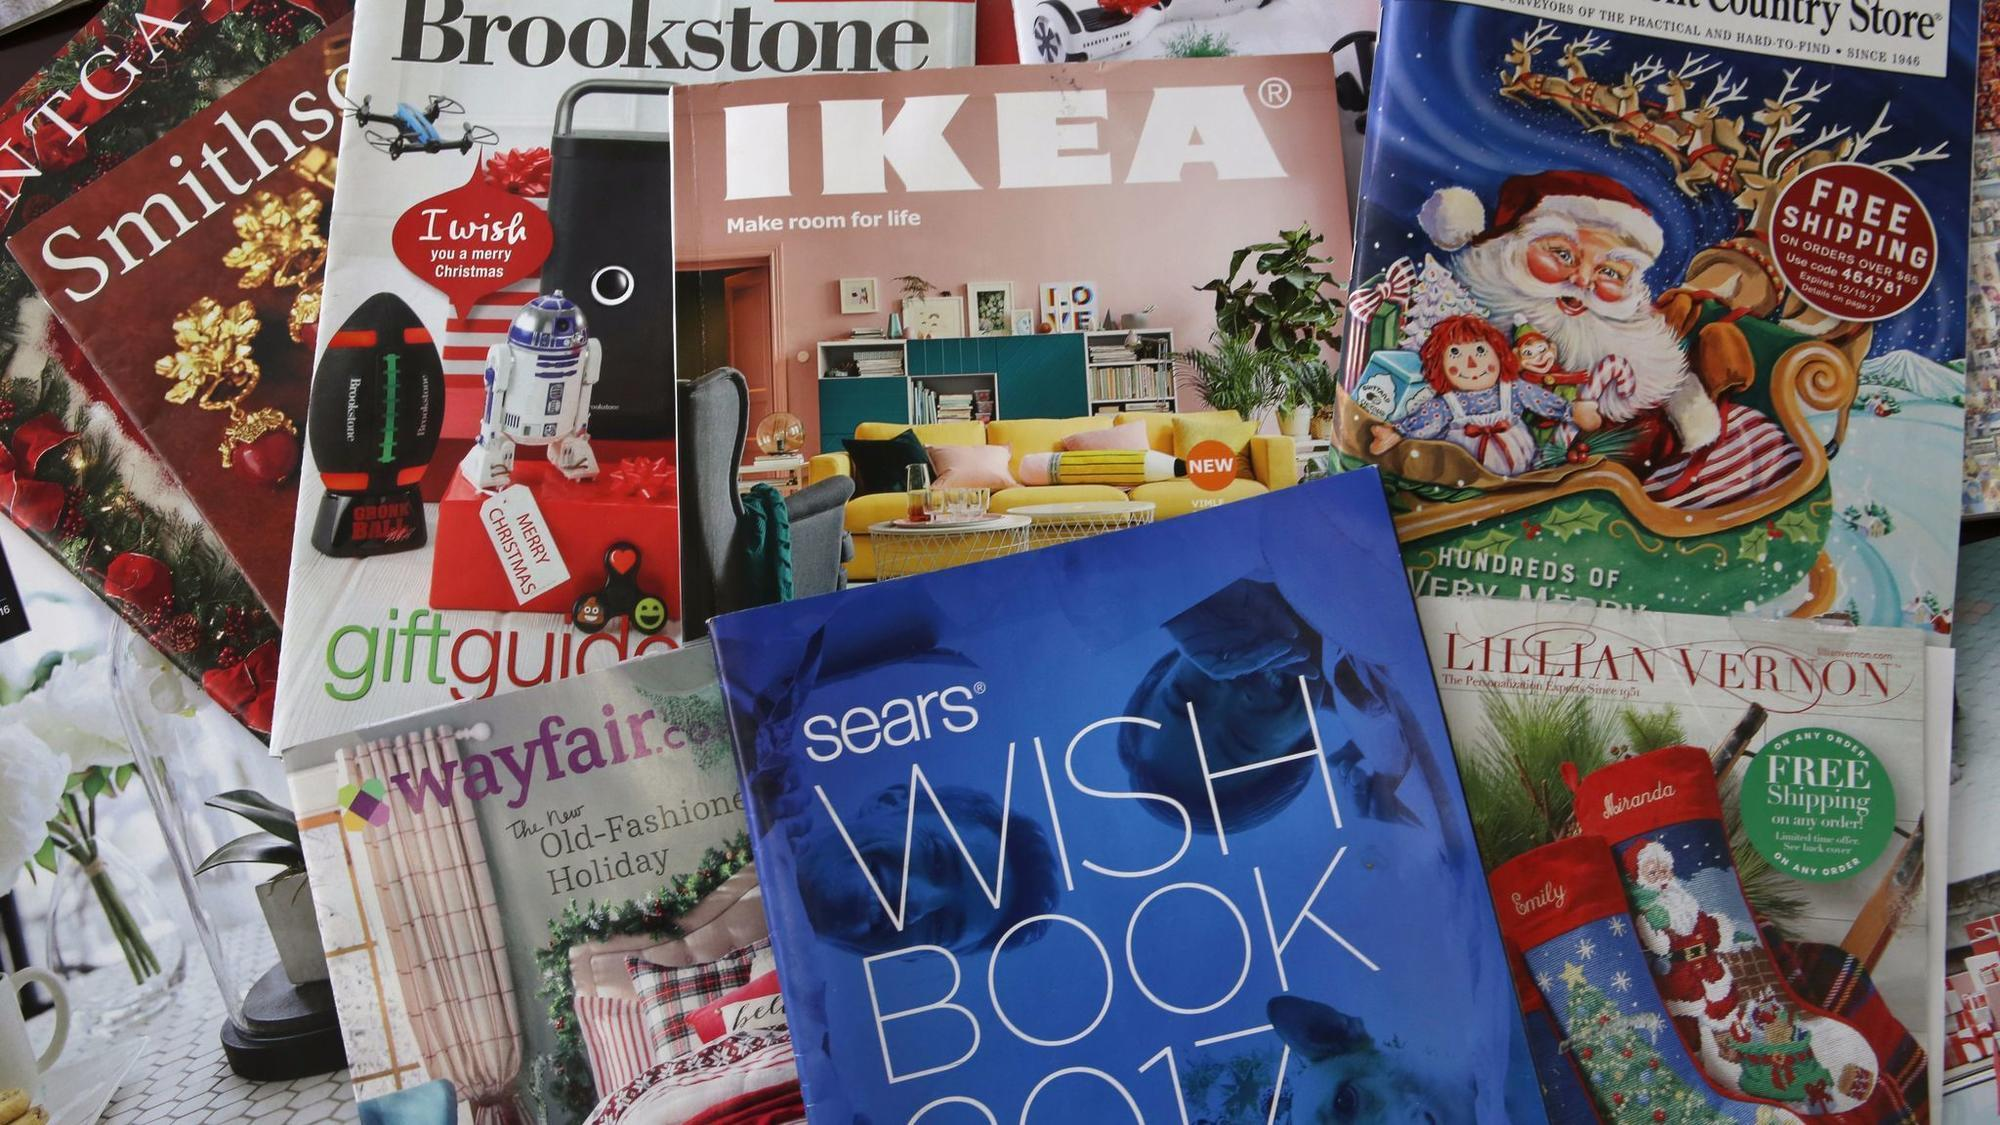 UK Catalogue Shopping - A Home Shopping Revolution. Historically in the UK, mail order catalogues were traditionally large glossy printed books containing products available to purchase from home. Typically customers would browse through a catalogue and .